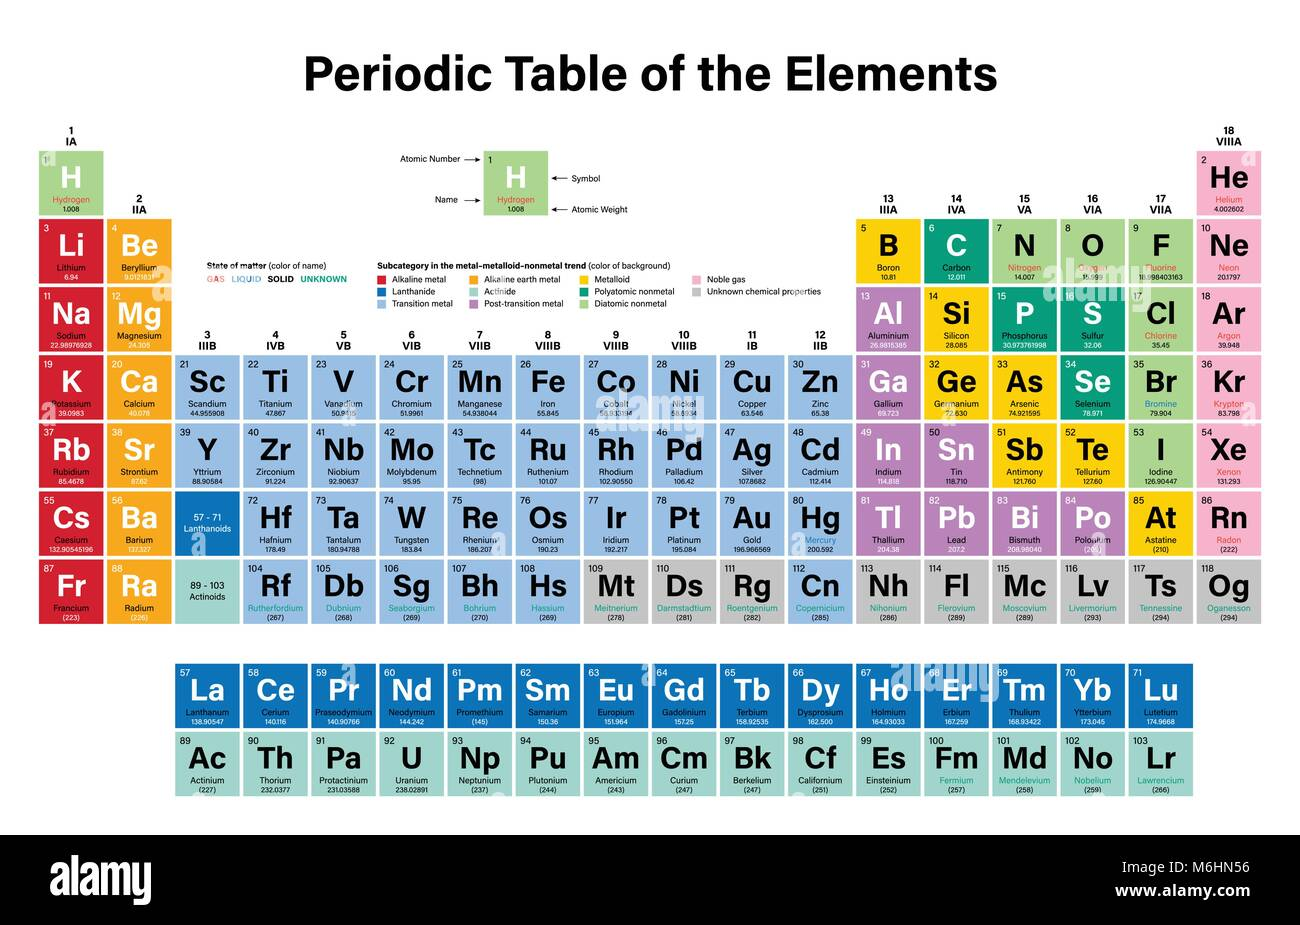 periodic table of the elements colorful vector illustration shows atomic number symbol name and atomic weight - Periodic Table Of Elements With Atomic Number And Weight